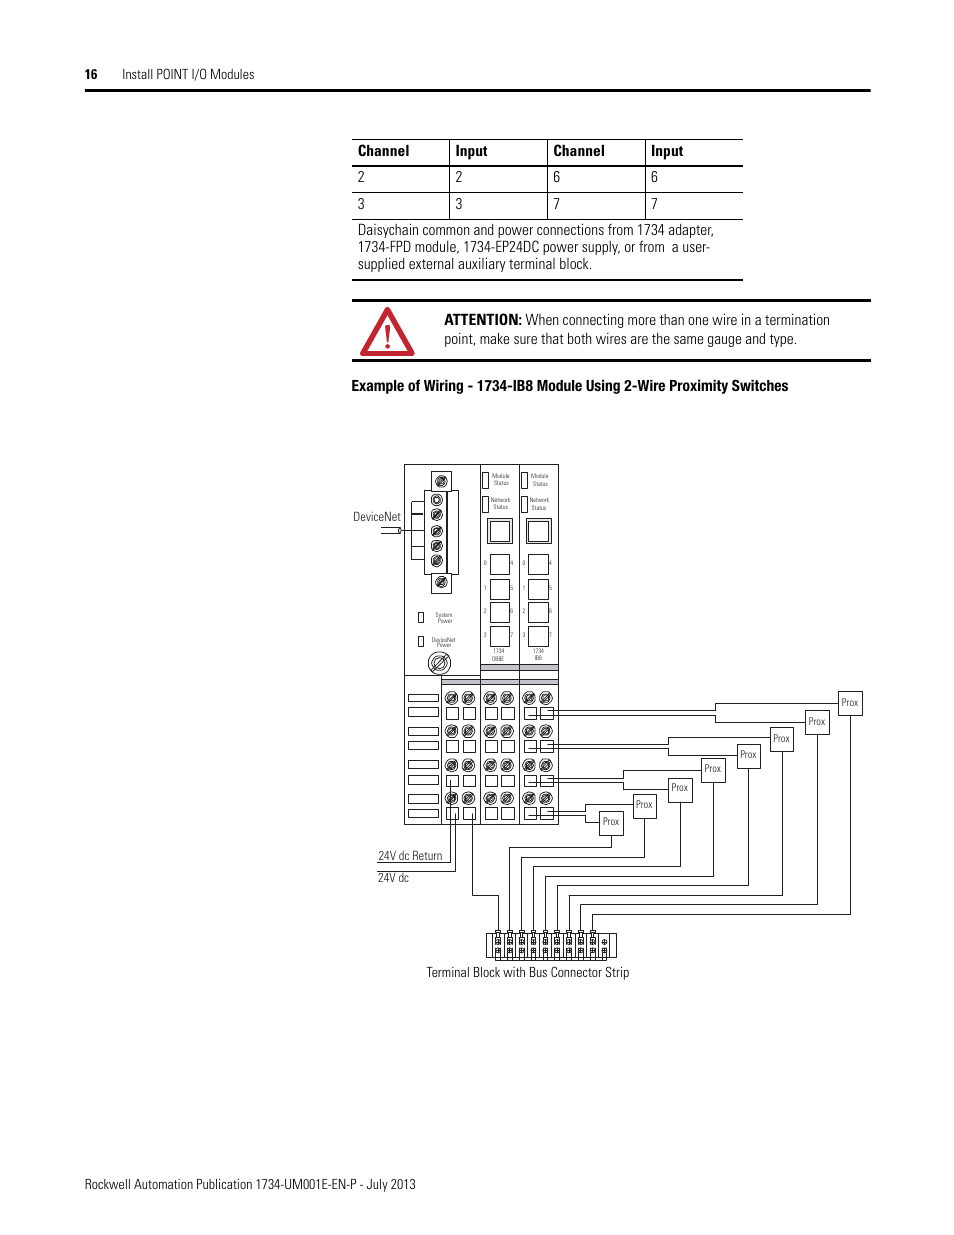 Terminal Block With Bus Connector Strip Rockwell Automation 1734 Wire Proximity Switch Wiring Diagram Further 3 Sensor Xxxx Point I O Digital And Analog Modules Pointblock User Manual Page